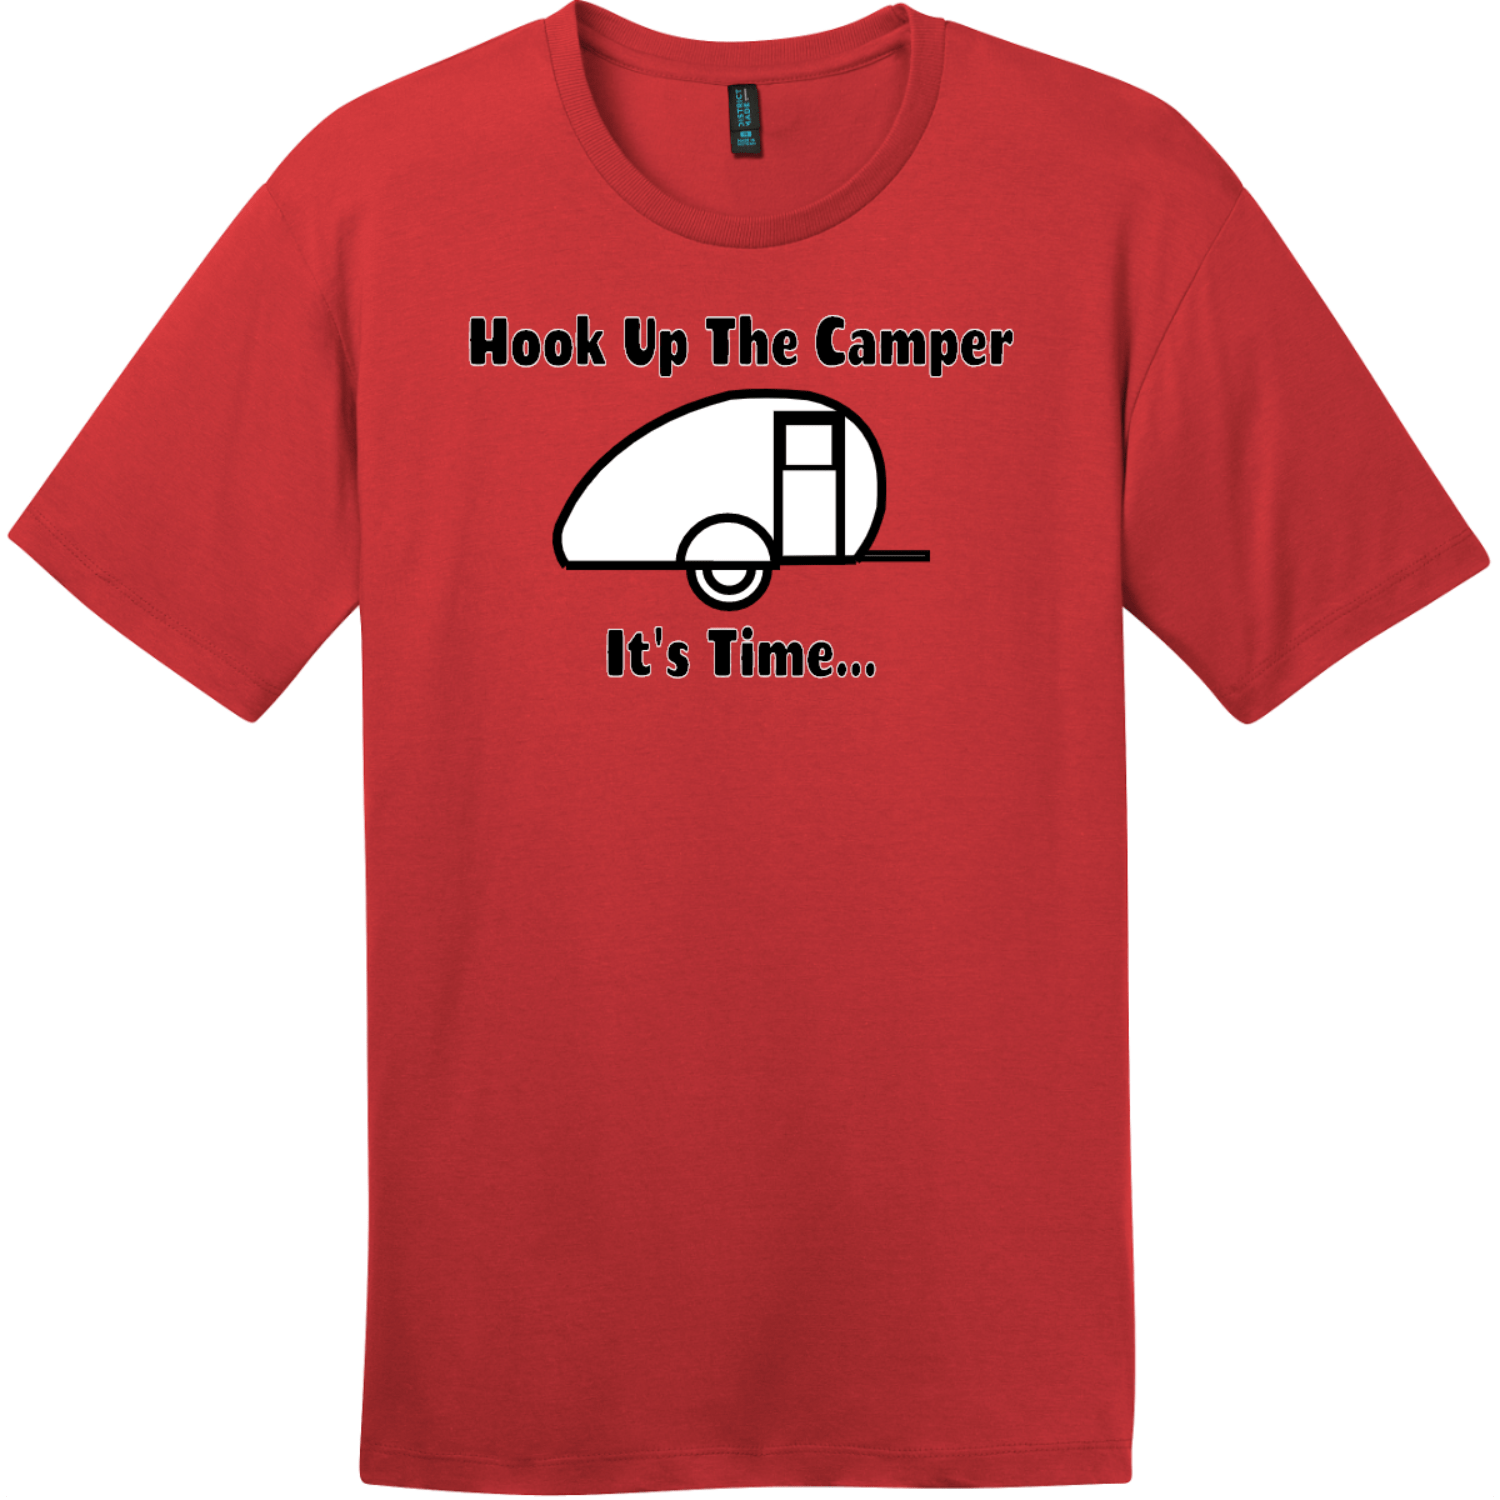 Hook Up The Camper T-Shirt Classic Red District Perfect Weight Tee DT104